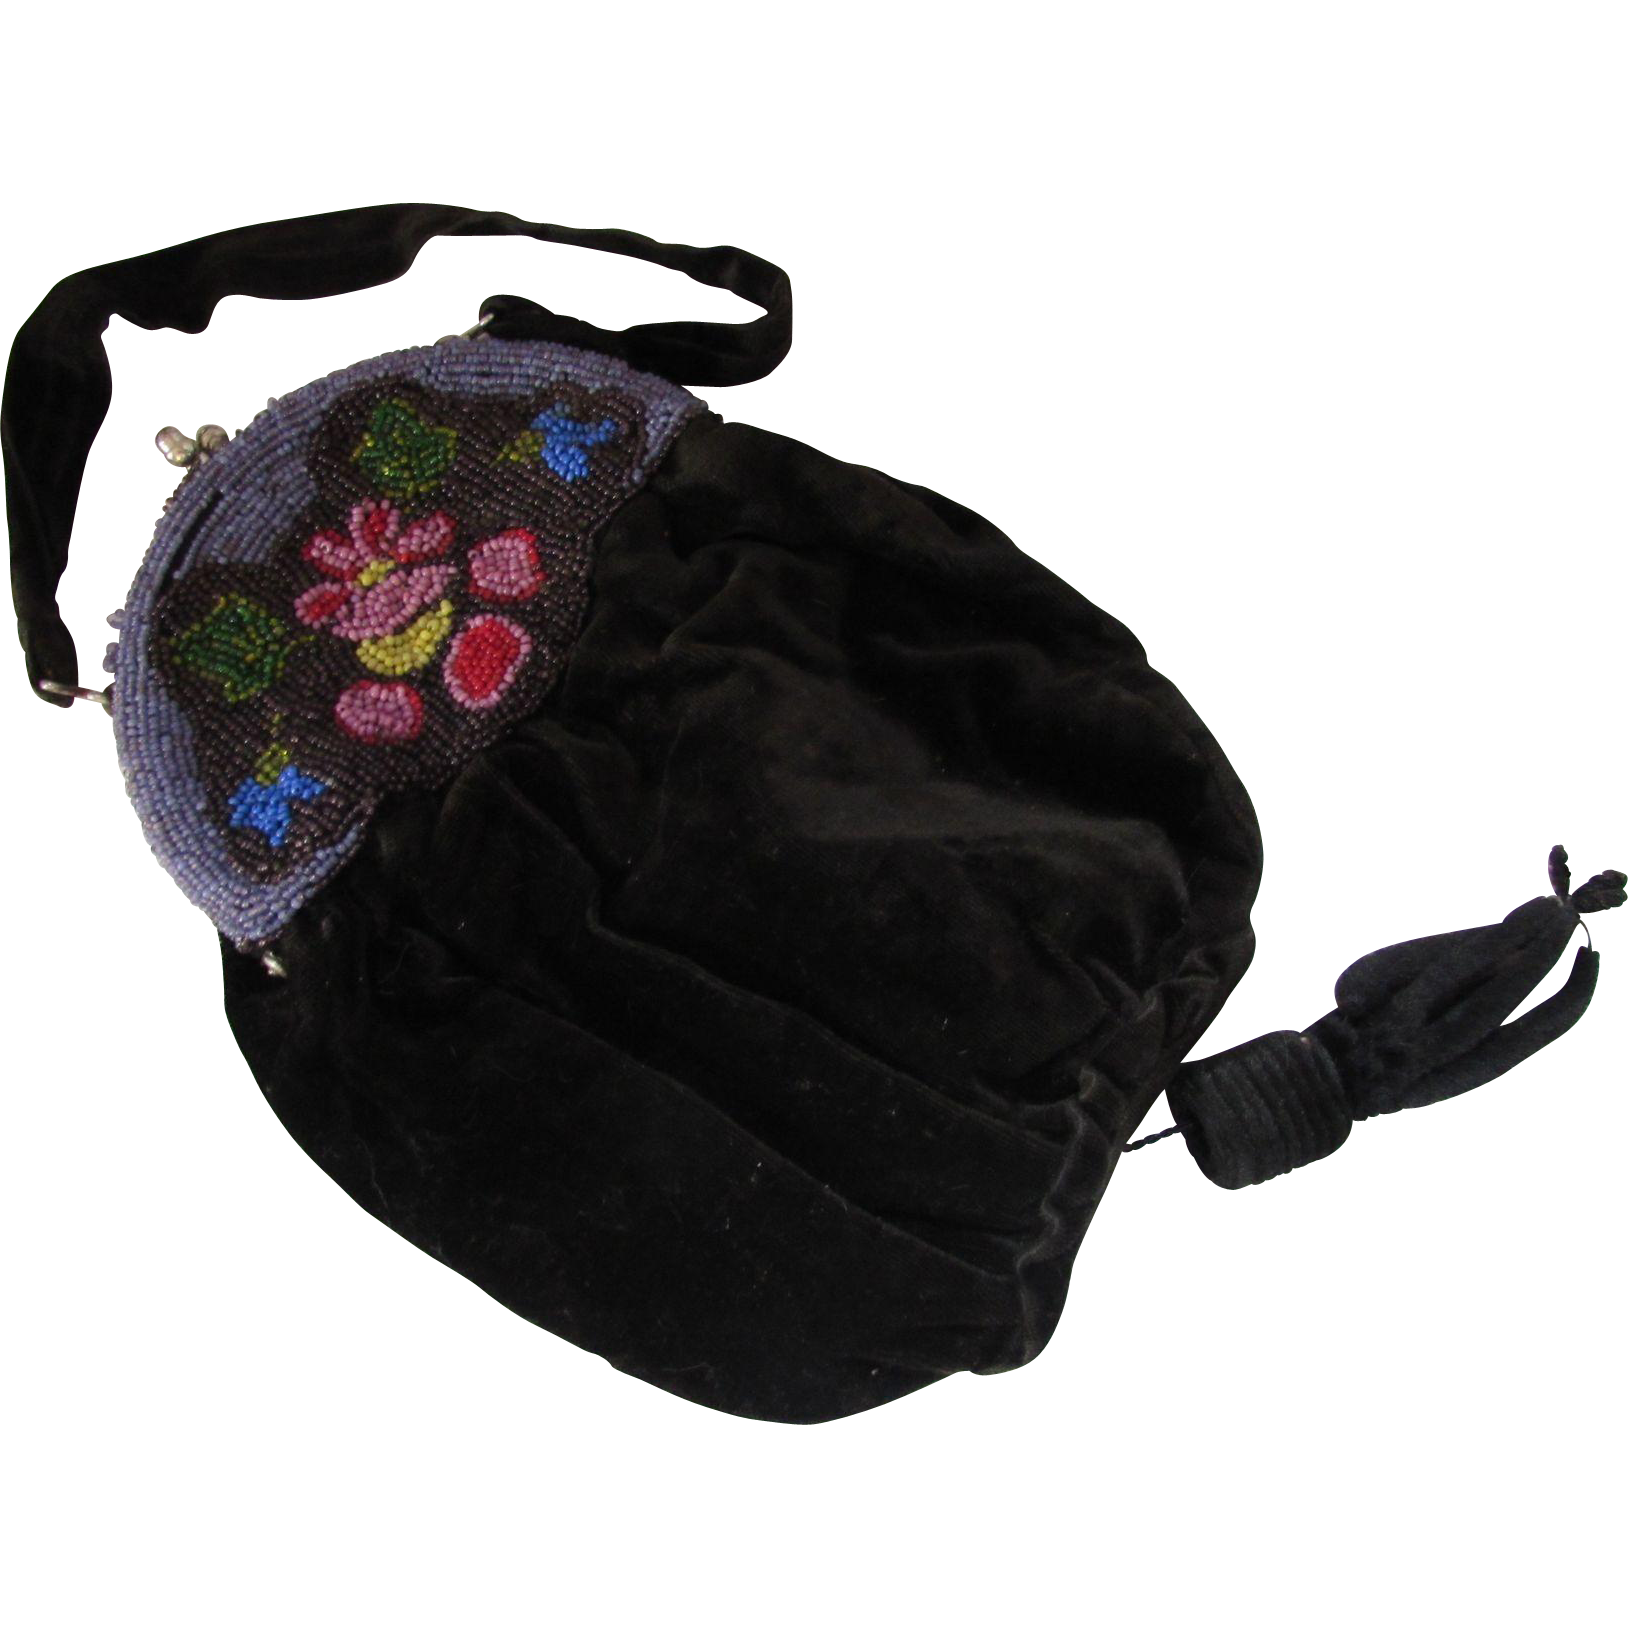 Black Velvet Pouch Purse withe Seed Bead Yoke in Purples and Pinks